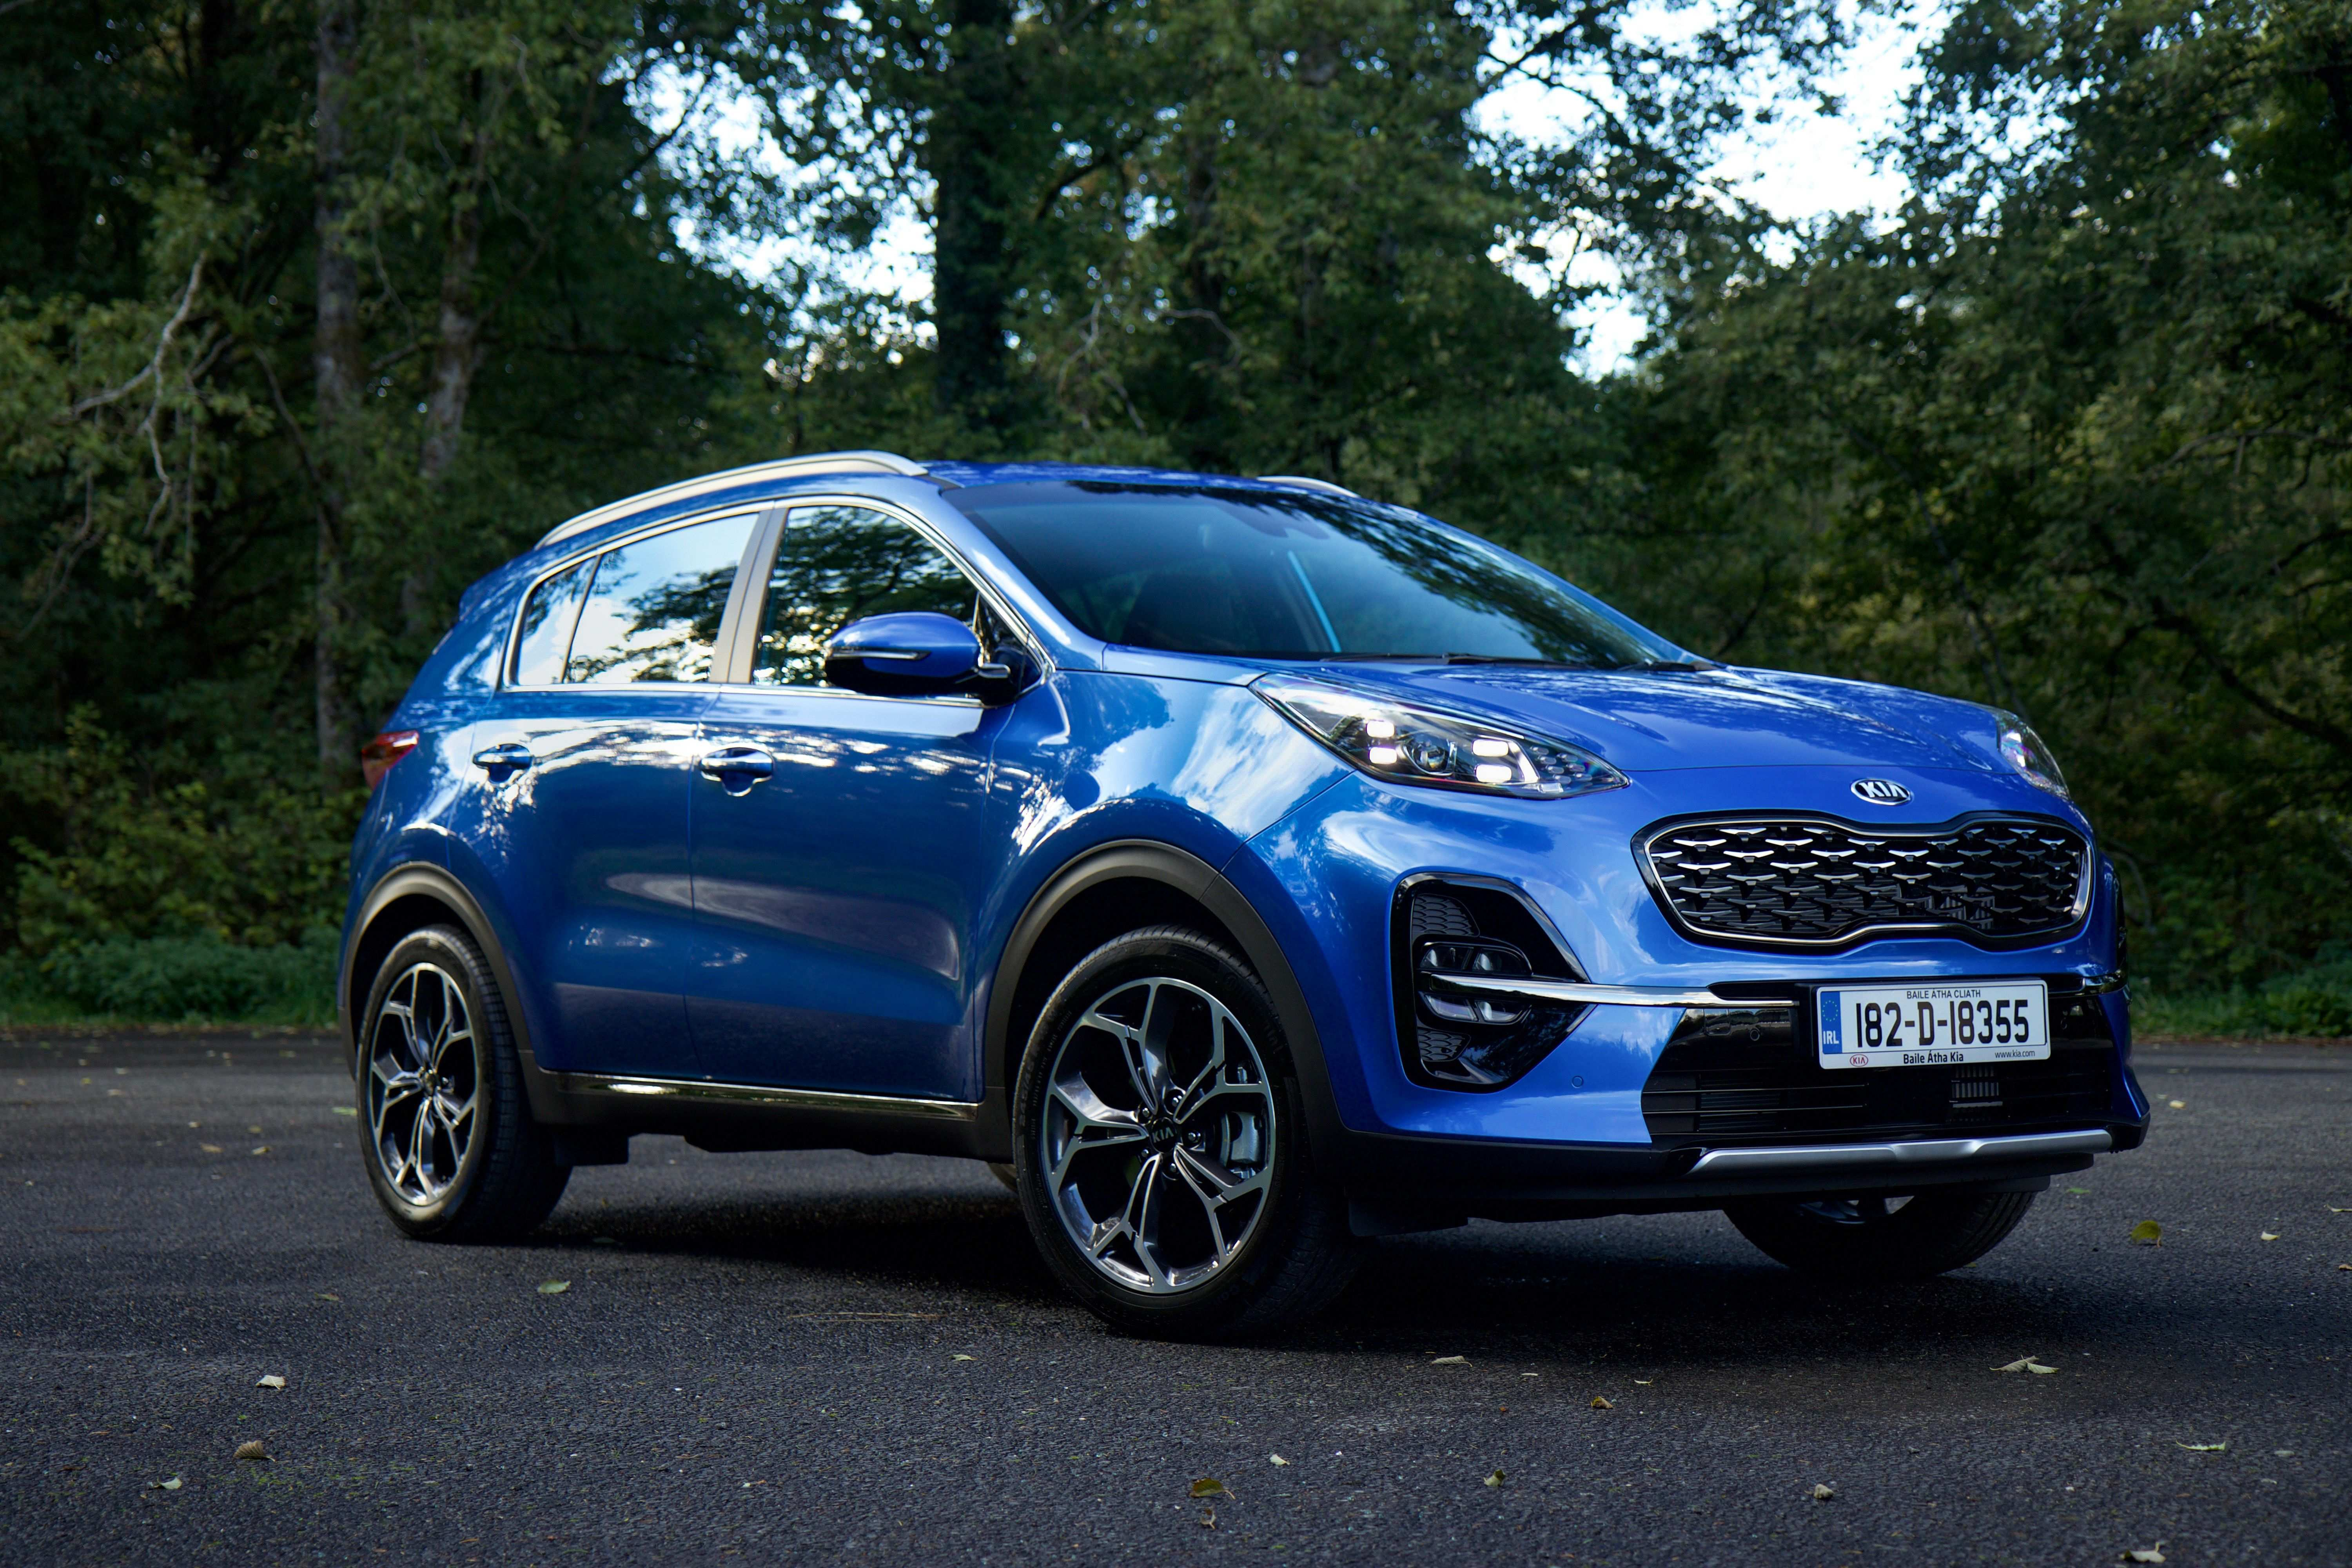 19 Best Review The Kia Sportage Gt Line 2019 Review And Specs Model for The Kia Sportage Gt Line 2019 Review And Specs